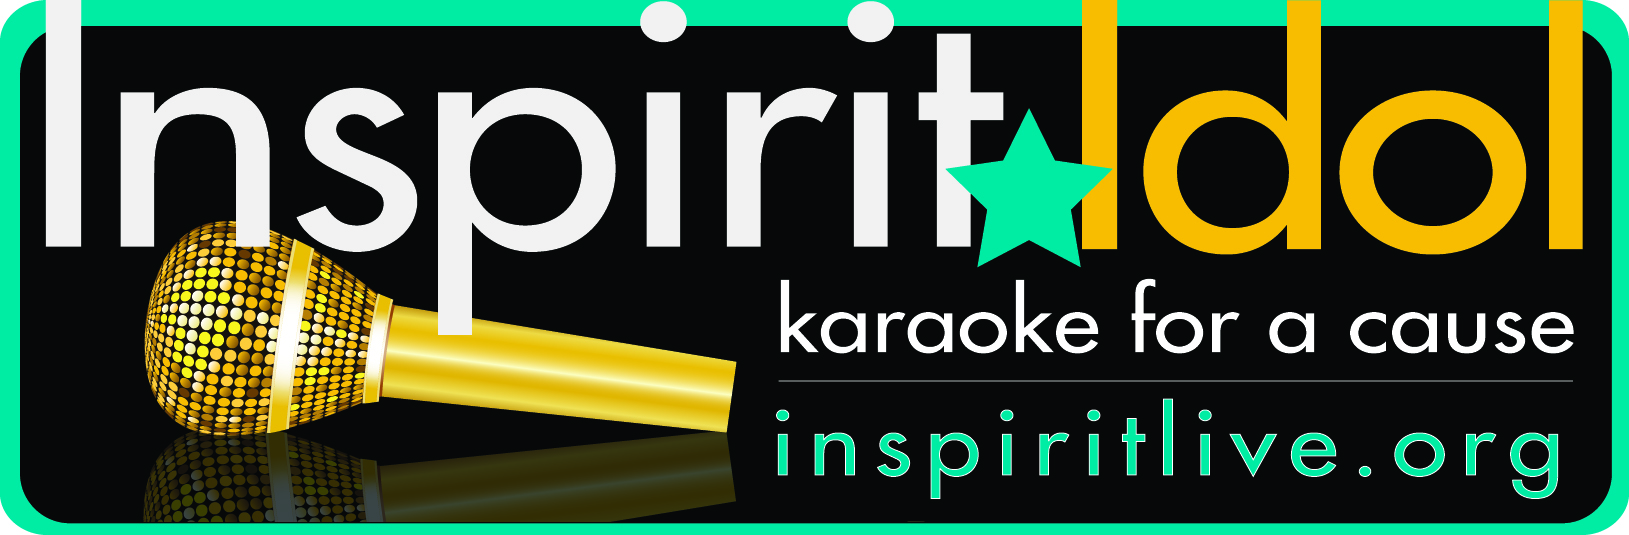 Inspirit's Big Fund-raiser